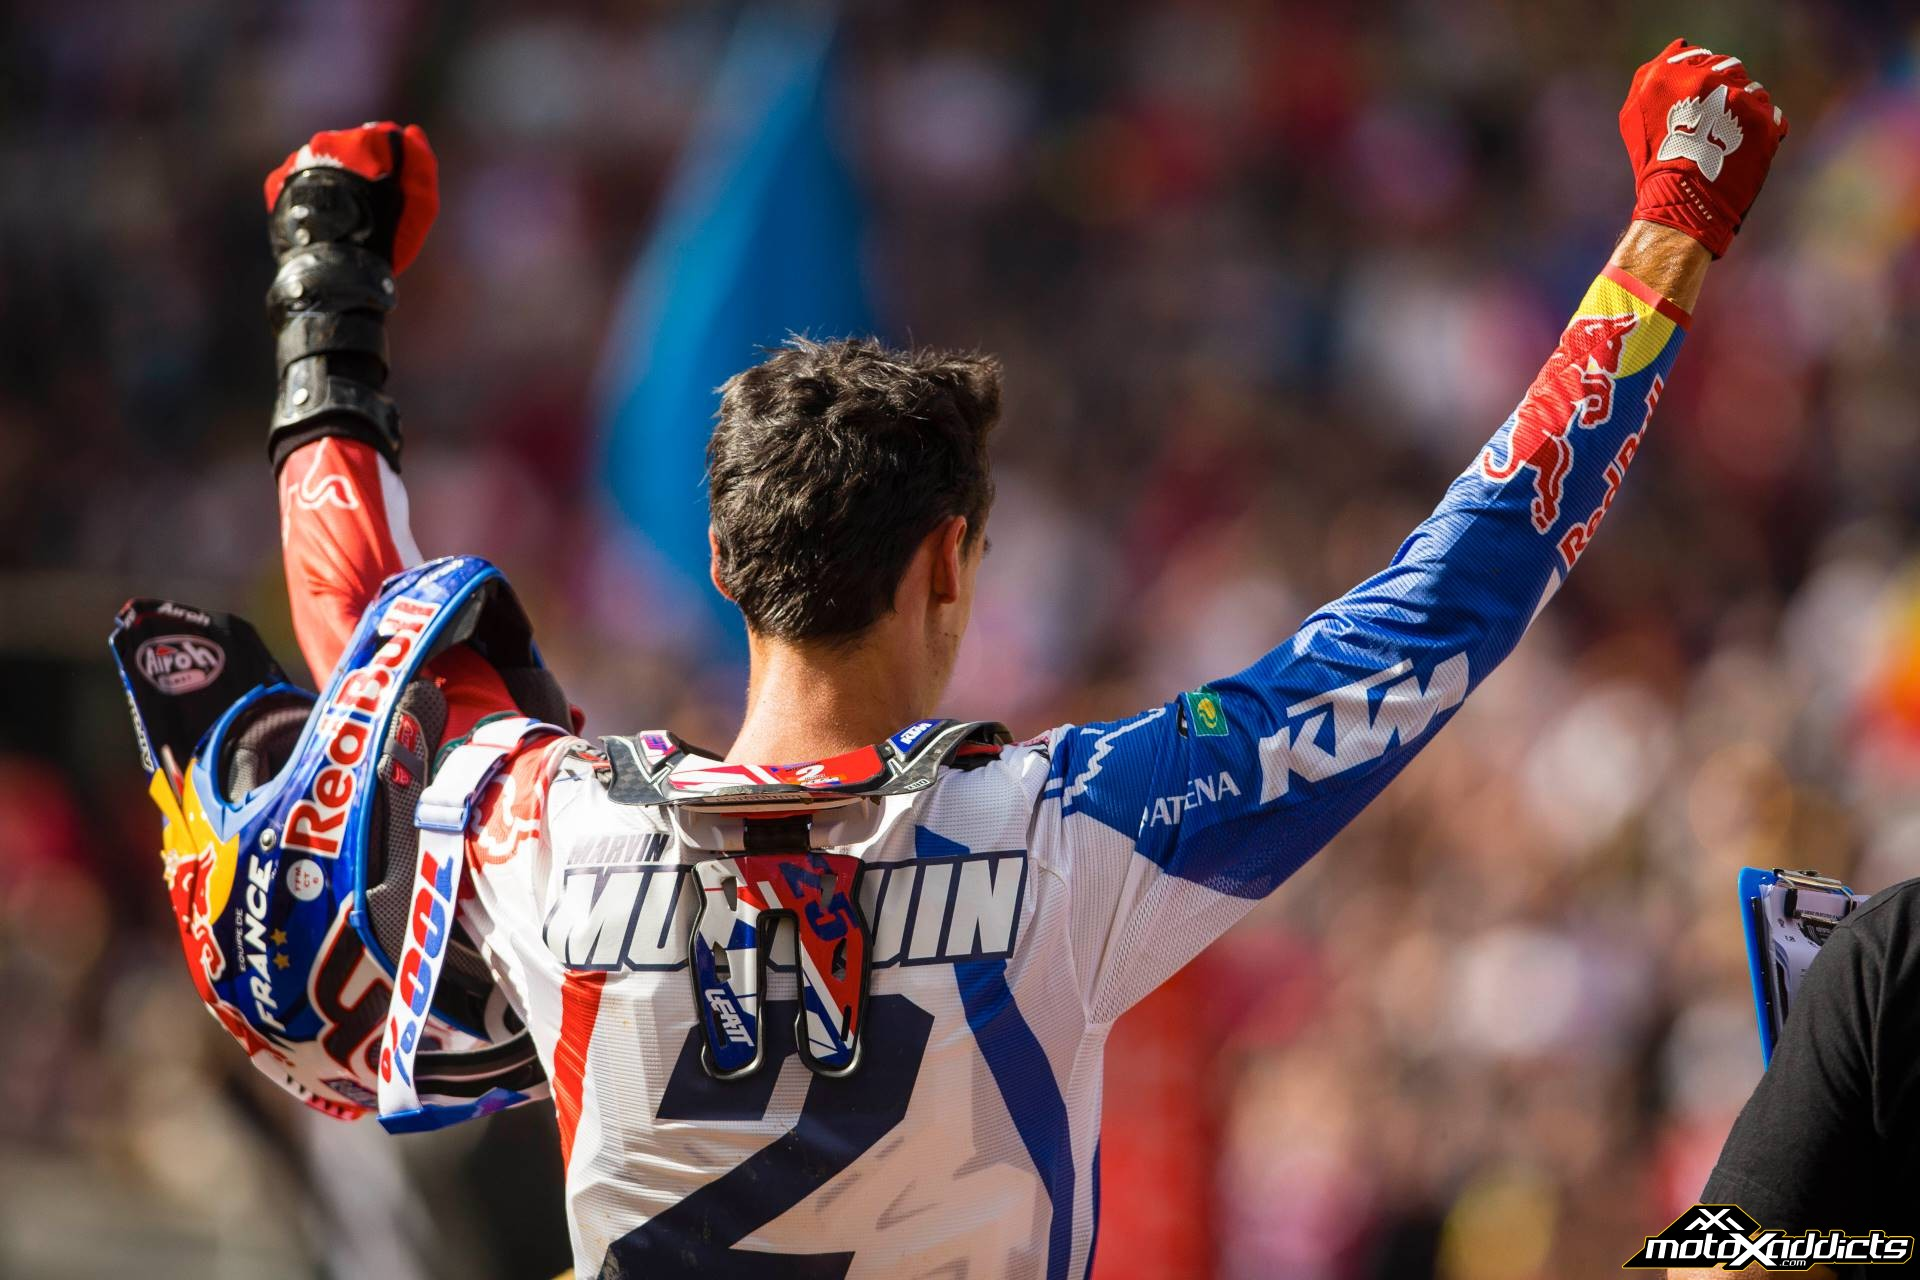 Marvin was on top of the world at the 2015 Motocross of Nations.  Photo by: Hoppenworld